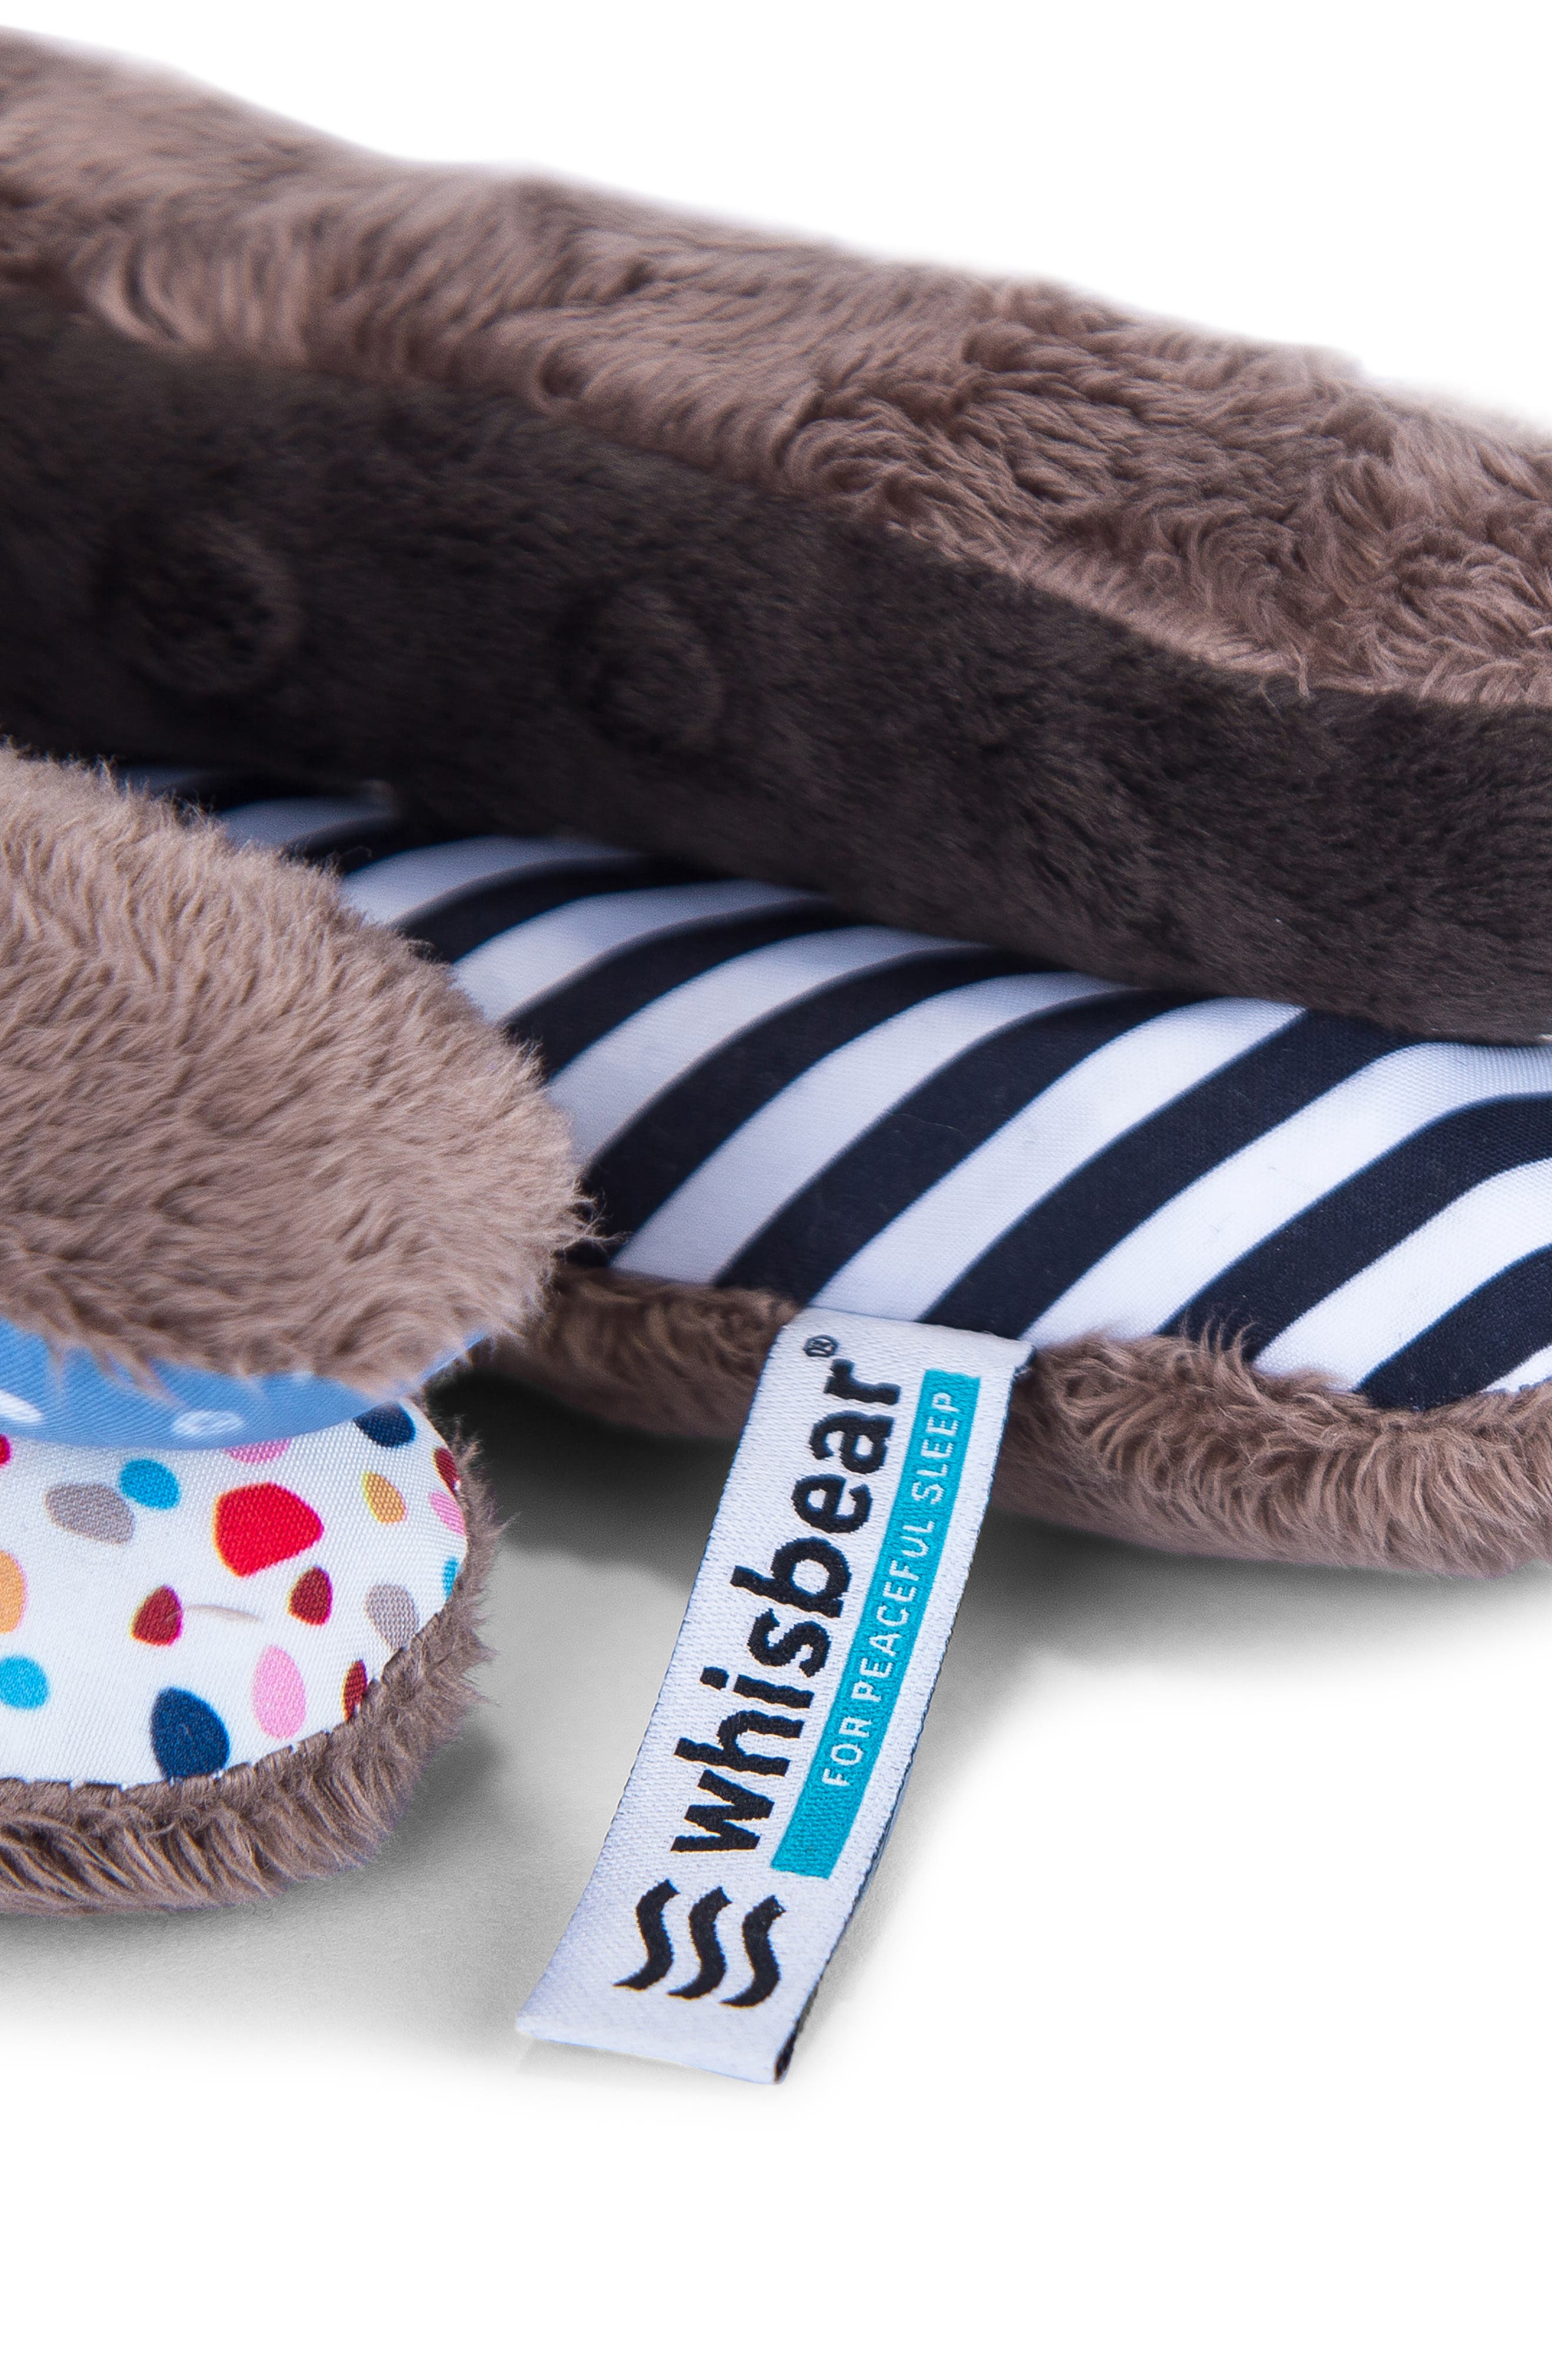 E-zzy the Sloth Baby Sleep Machine,                             Alternate thumbnail 2, color,                             BROWN